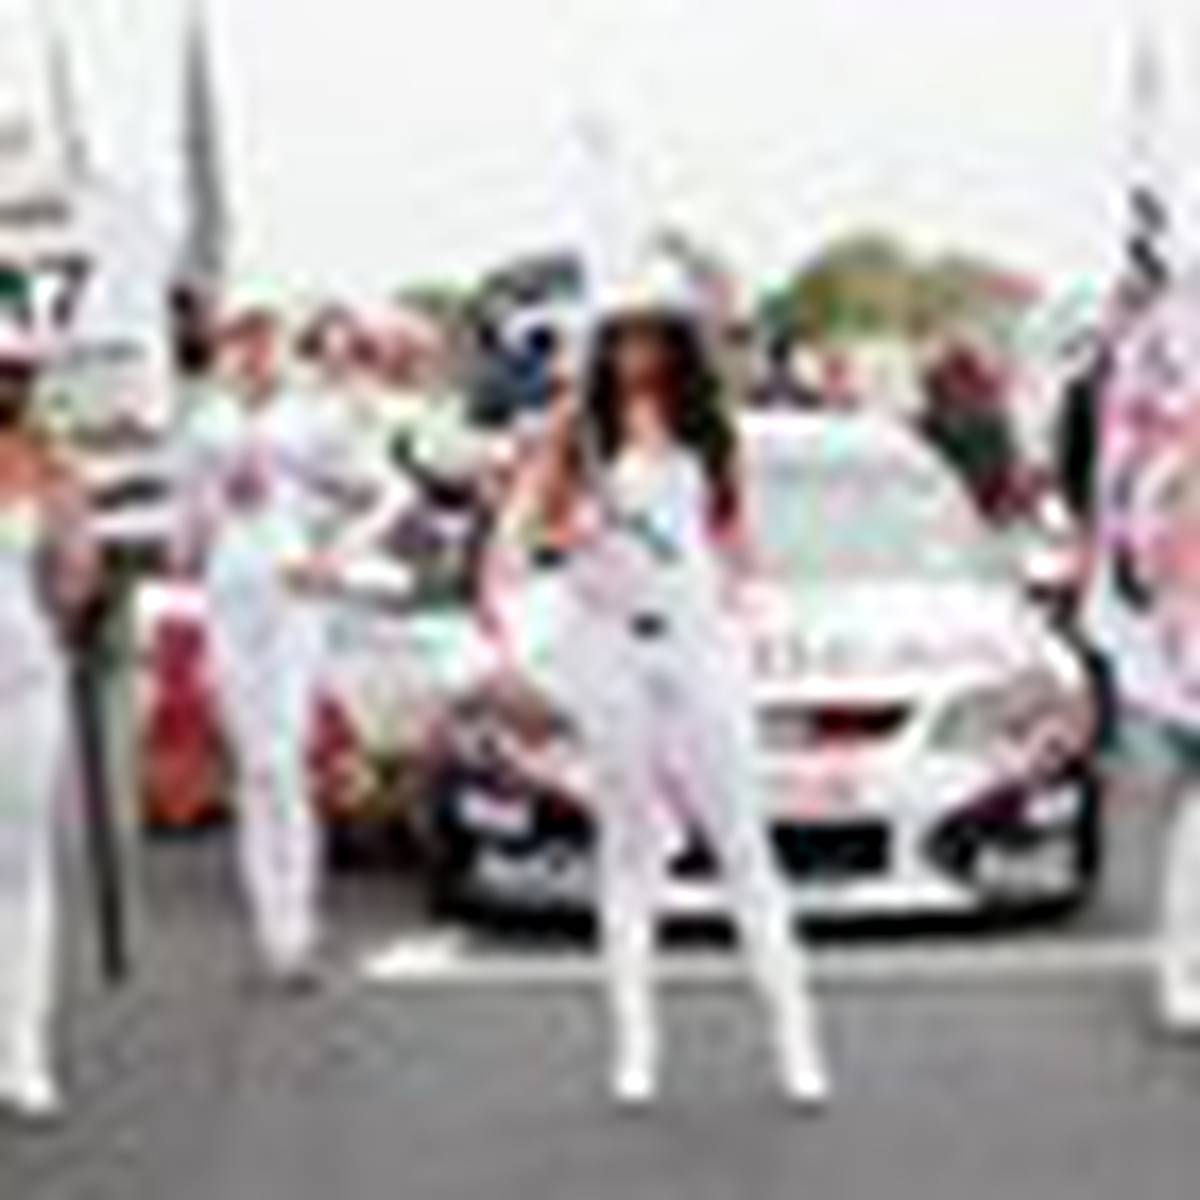 V8 Supercars may roll out of Hamilton - NZ Herald